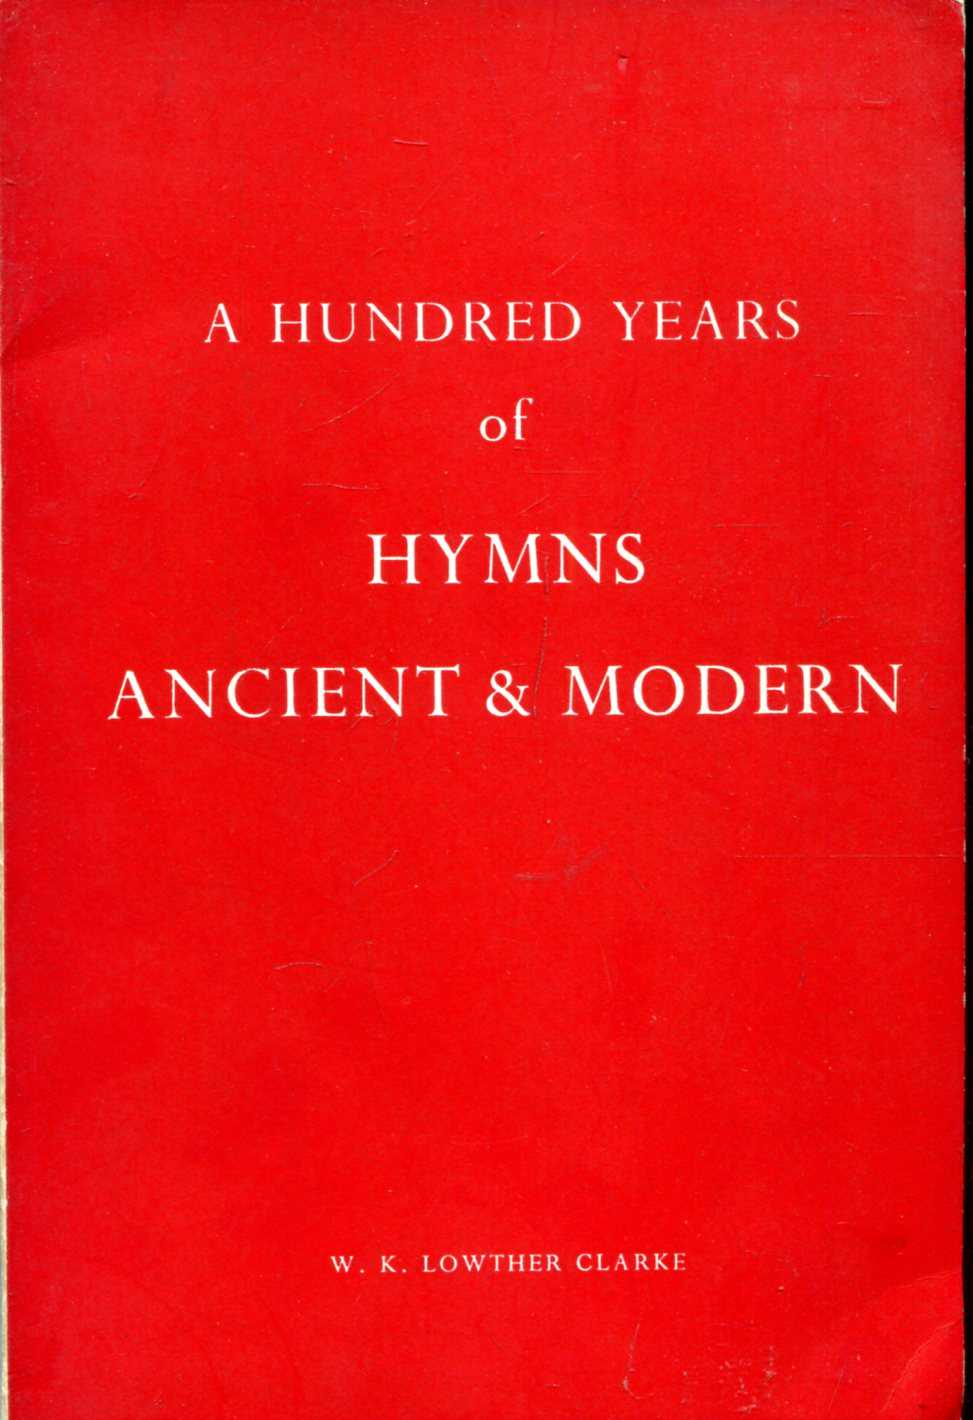 Image for A Hundred Years of Hymns Ancient & Modern